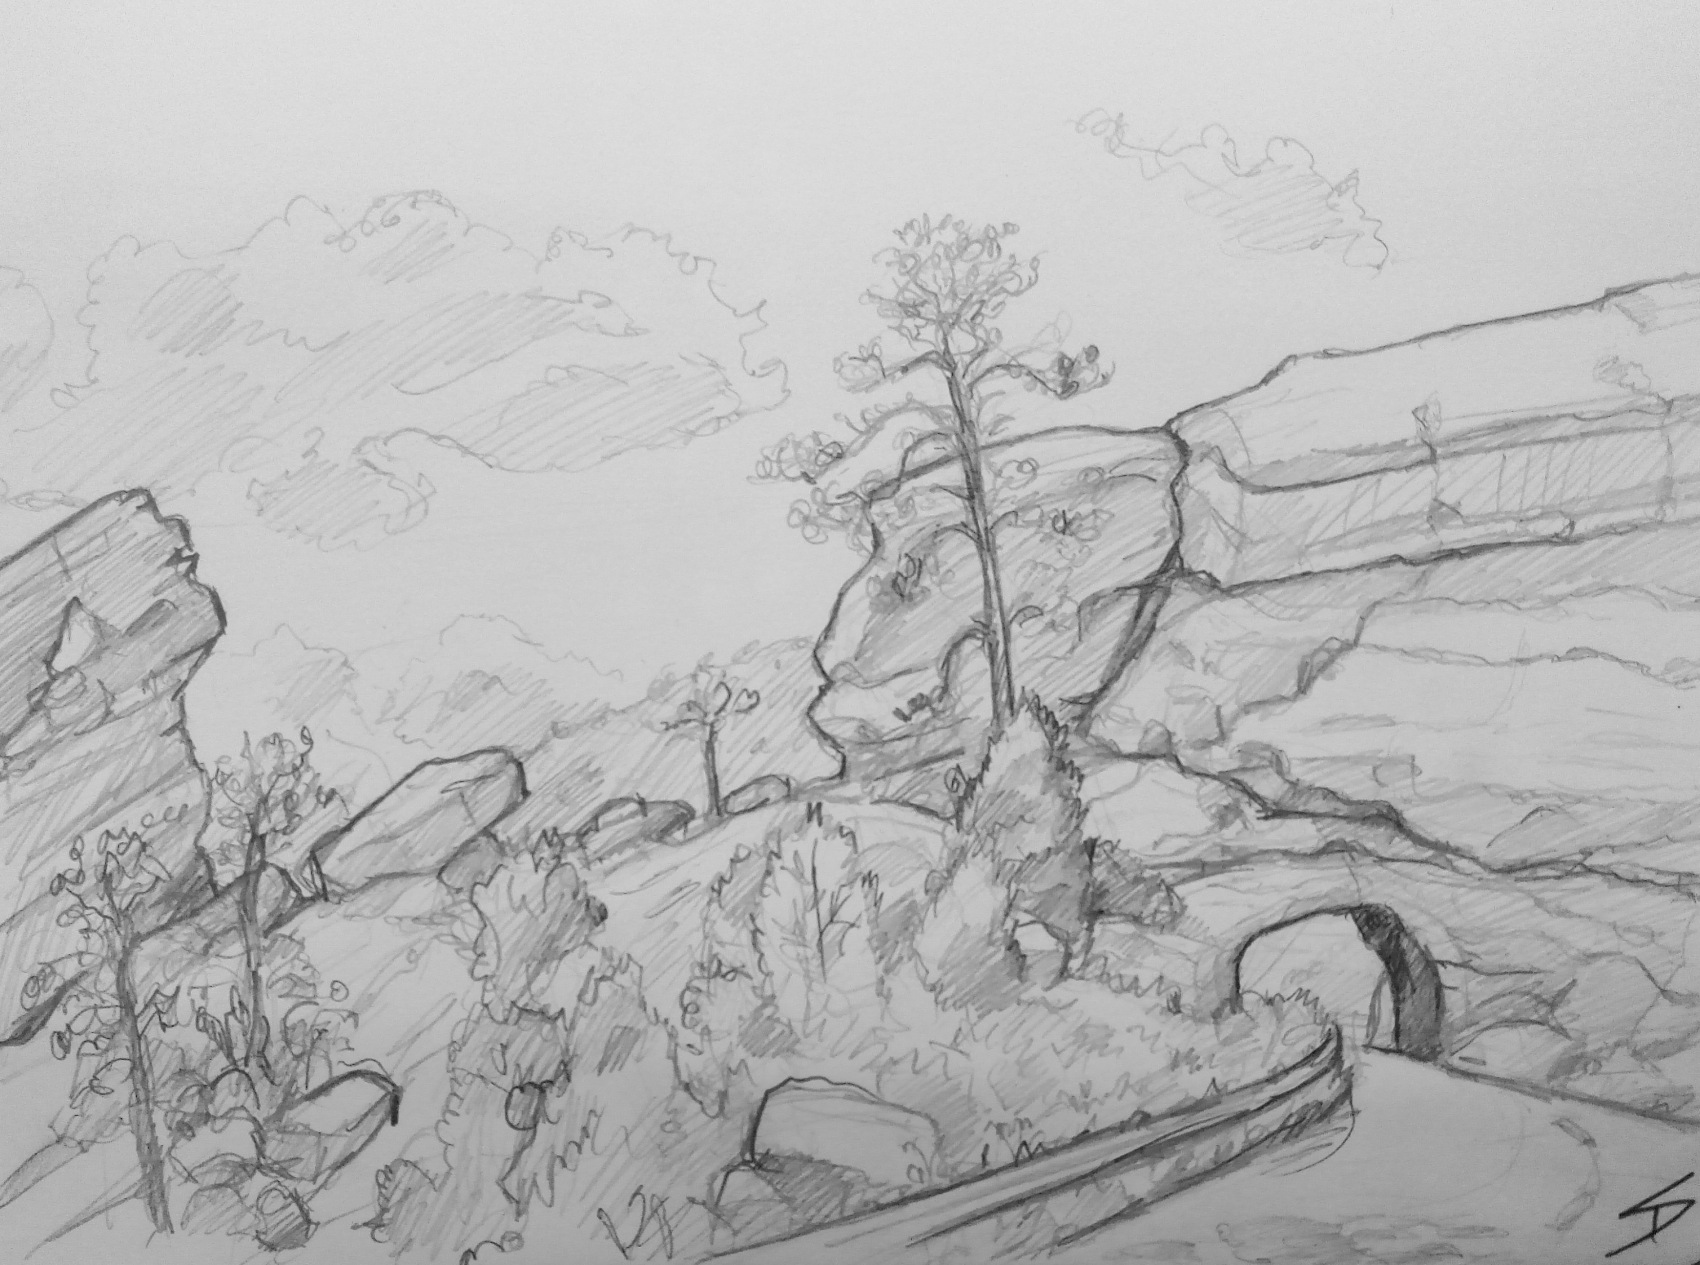 Nature Art - Nr Morrison, Colorado, US. 'Red Rocks Park.' Sketched while sheltering under a tree from the hot summer sun. sketchbookexplorer.com @davidasutton @sketchbookexplorer Facebook.com/davidanthonysutton #redrocksparkcolorado #colorado #redrocksamphitheatre #unitedstates #USA #travel #travelblog #art #sketching #nature #wildwest